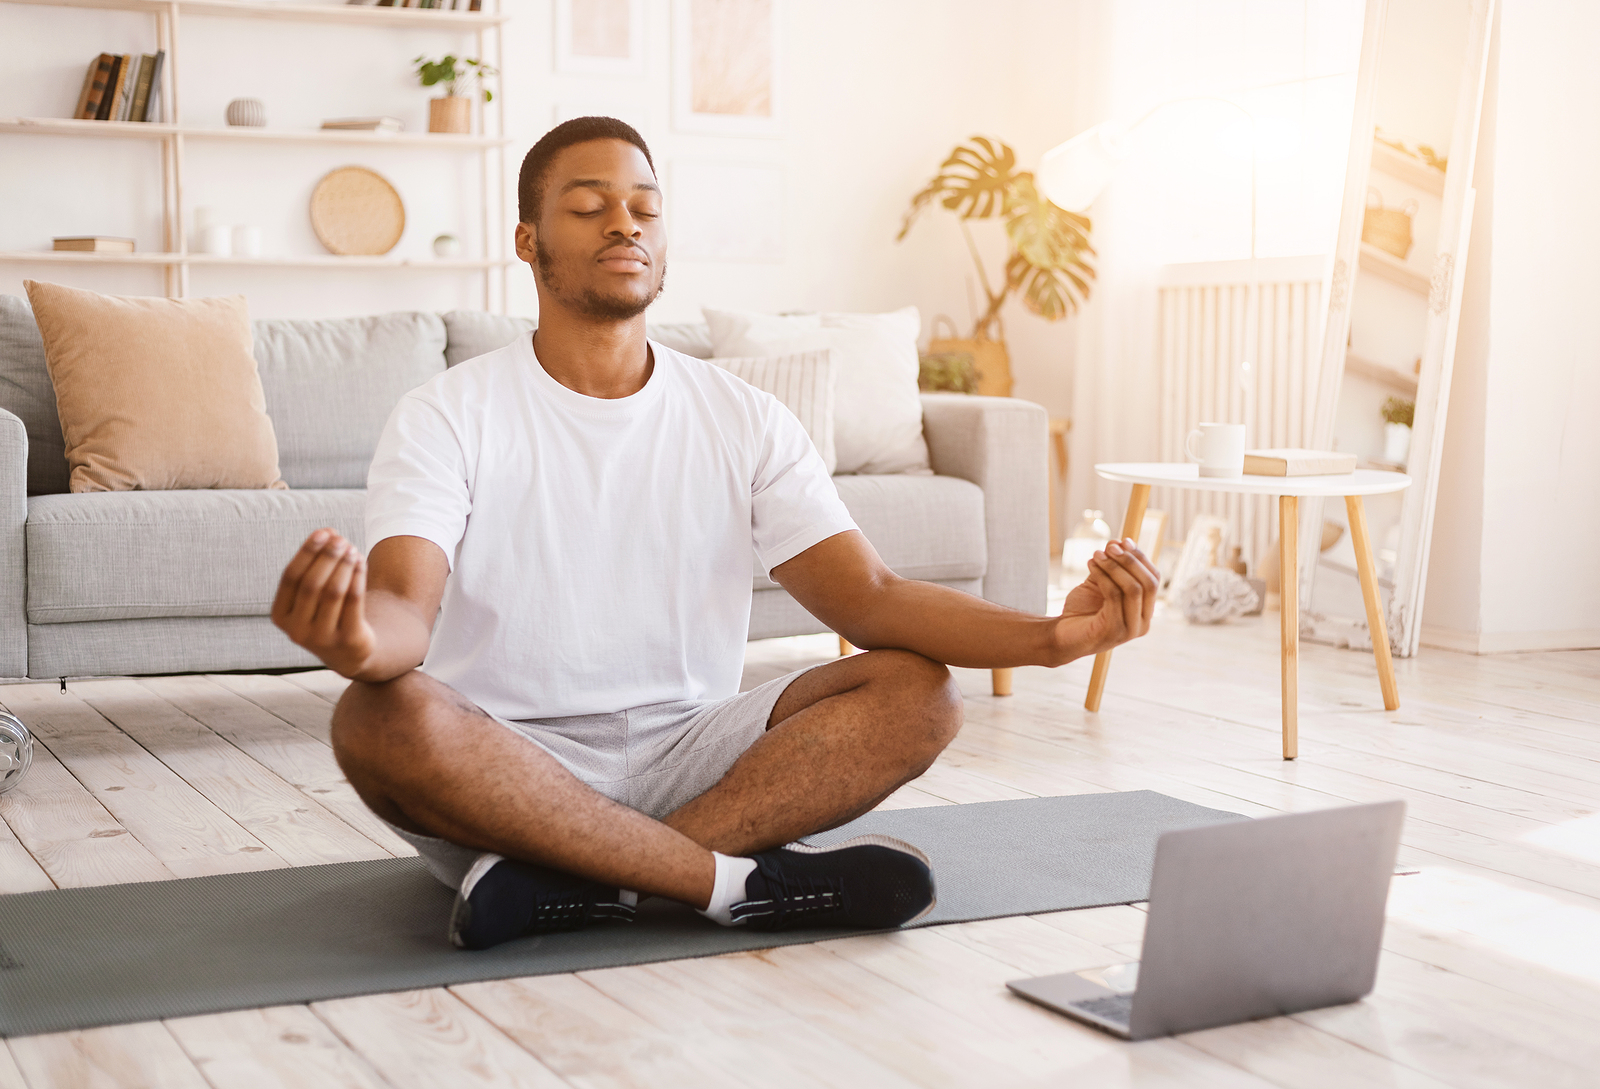 Photo of a black man meditating on the floor with a computer nearby, he is calm and smiling.